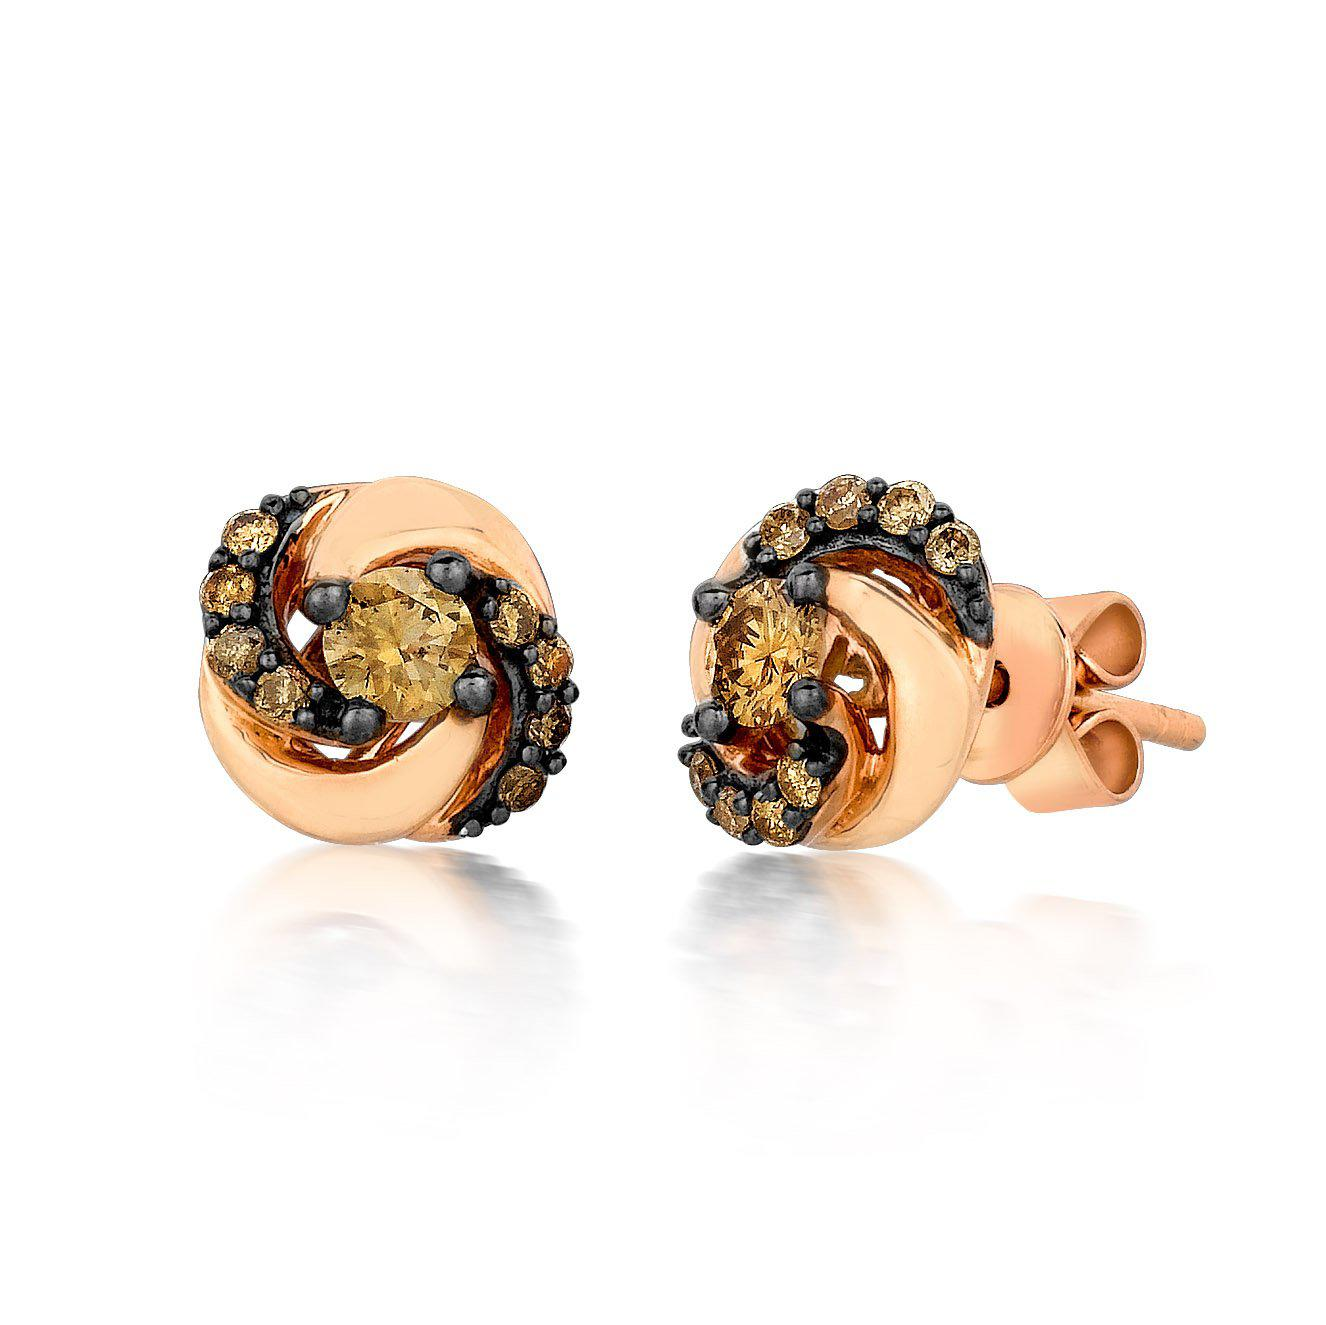 Strawberry Gold Swirl Earring with Chocolate & Vanilla Diamonds